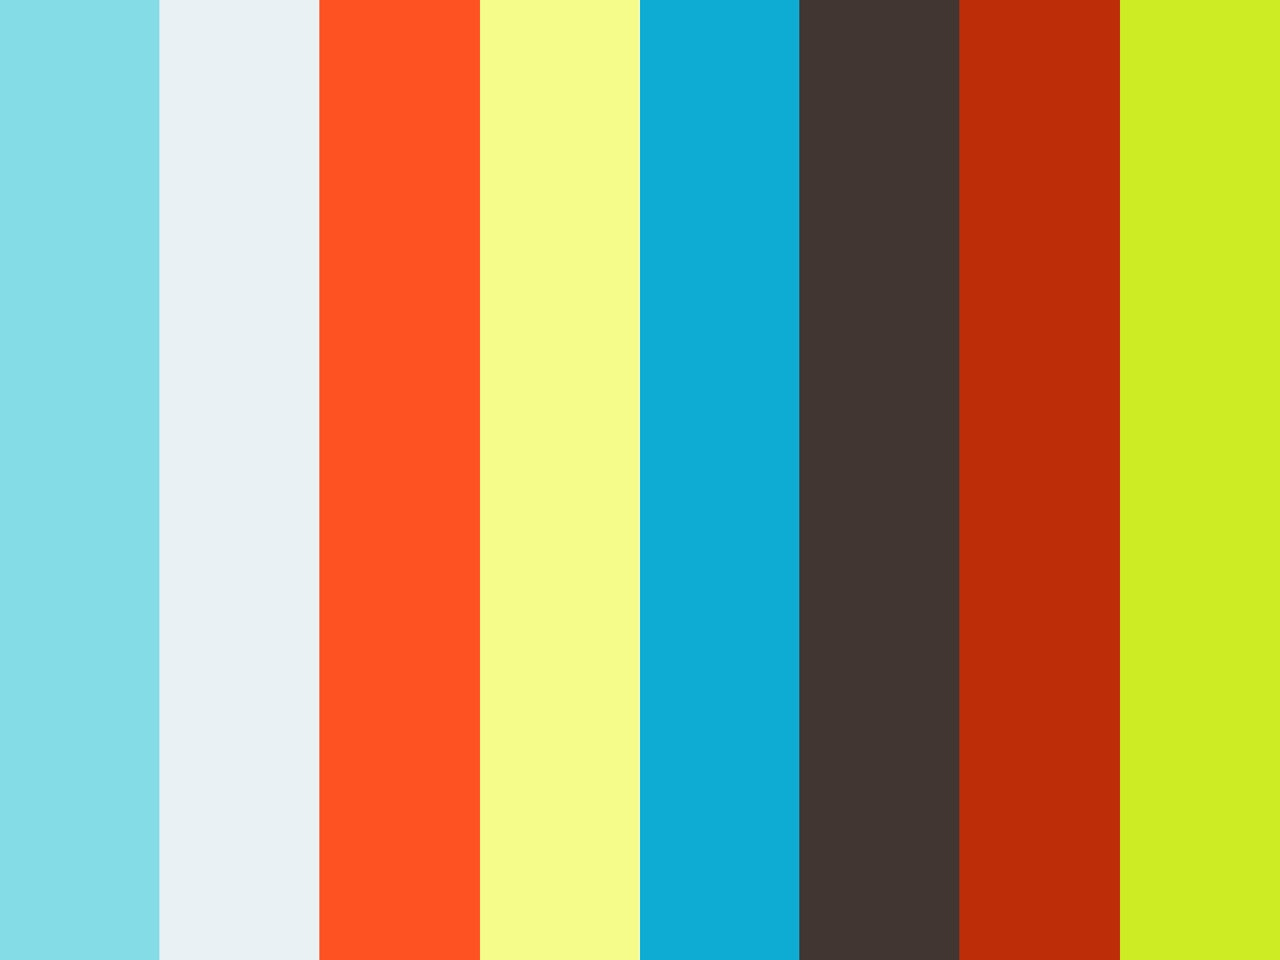 victoria gardens of frisco on vimeo